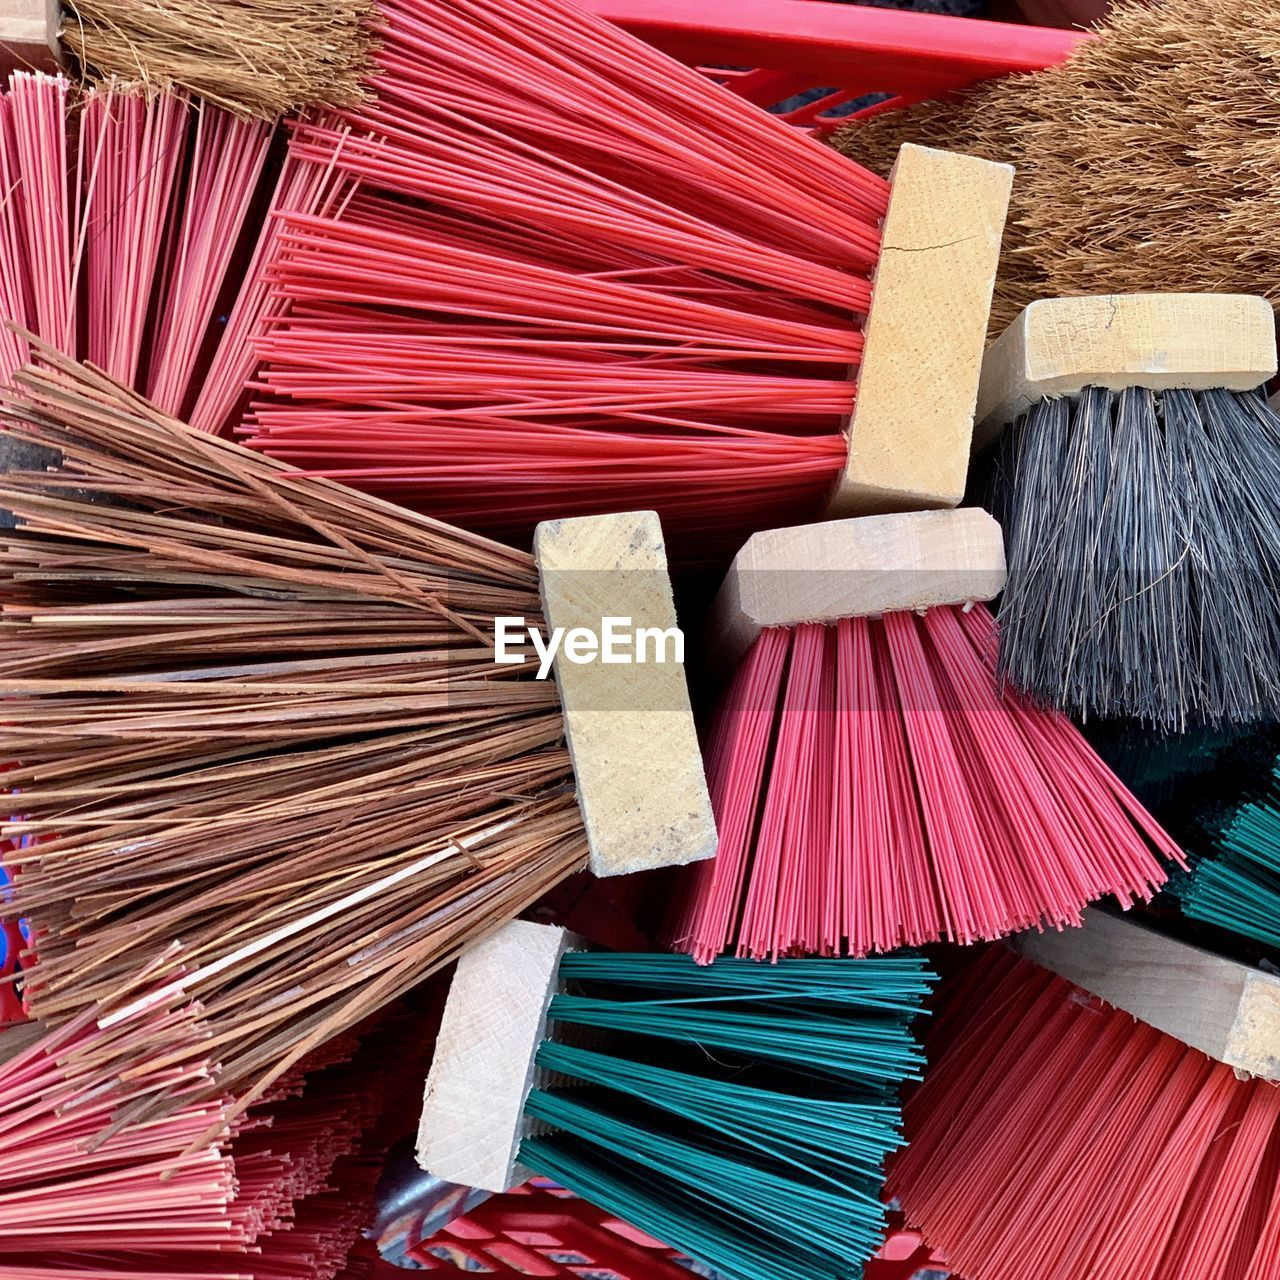 large group of objects, choice, variation, multi colored, abundance, broom, no people, red, still life, full frame, high angle view, cleaning, indoors, backgrounds, close-up, wood - material, cleaning equipment, brush, heap, retail